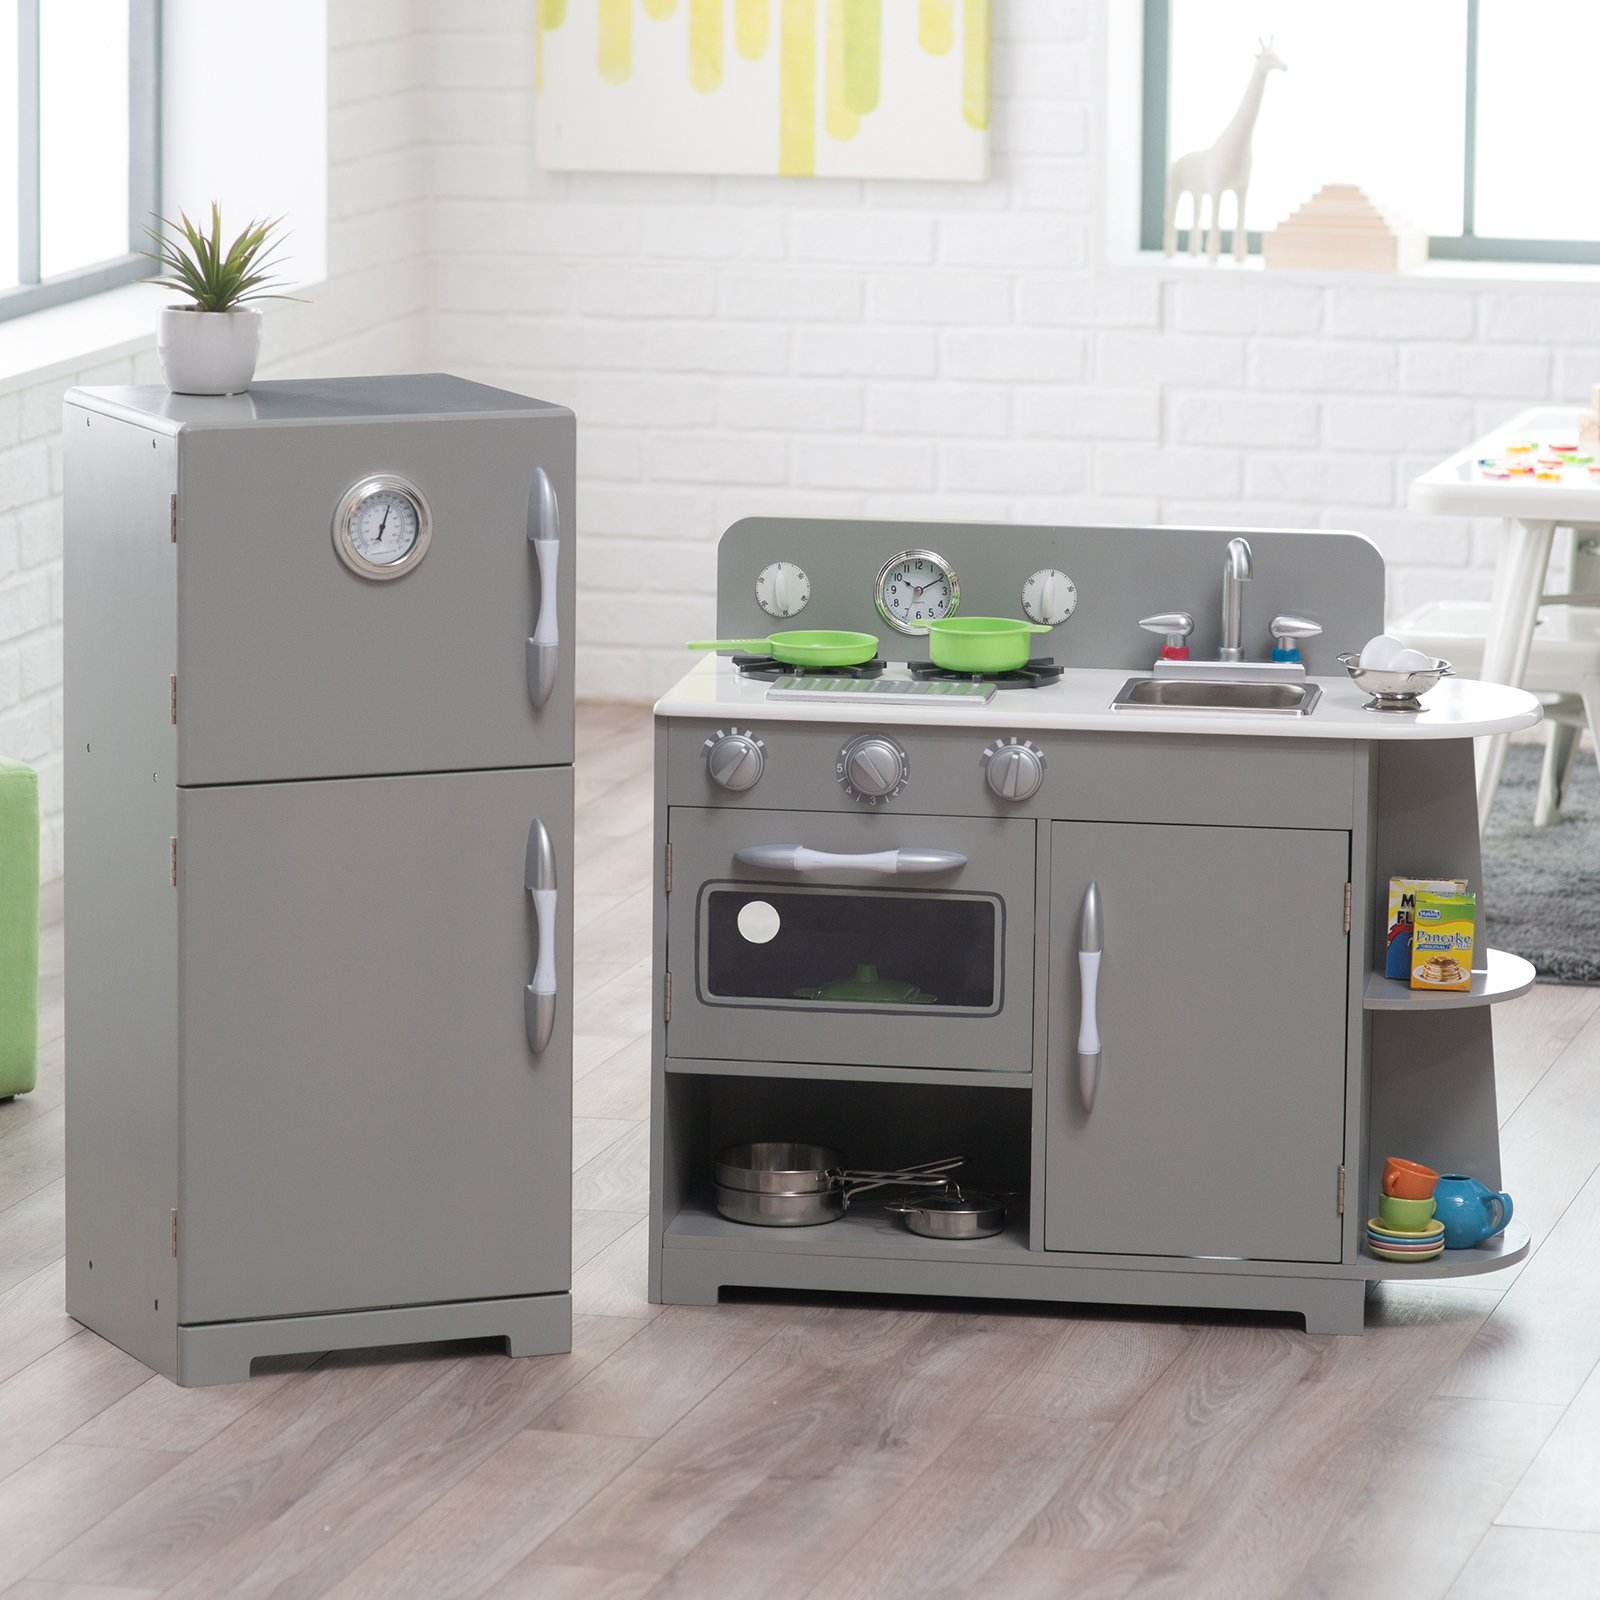 Charmant Classic Wooden Play Kitchen Set   Gray   Walmart.com